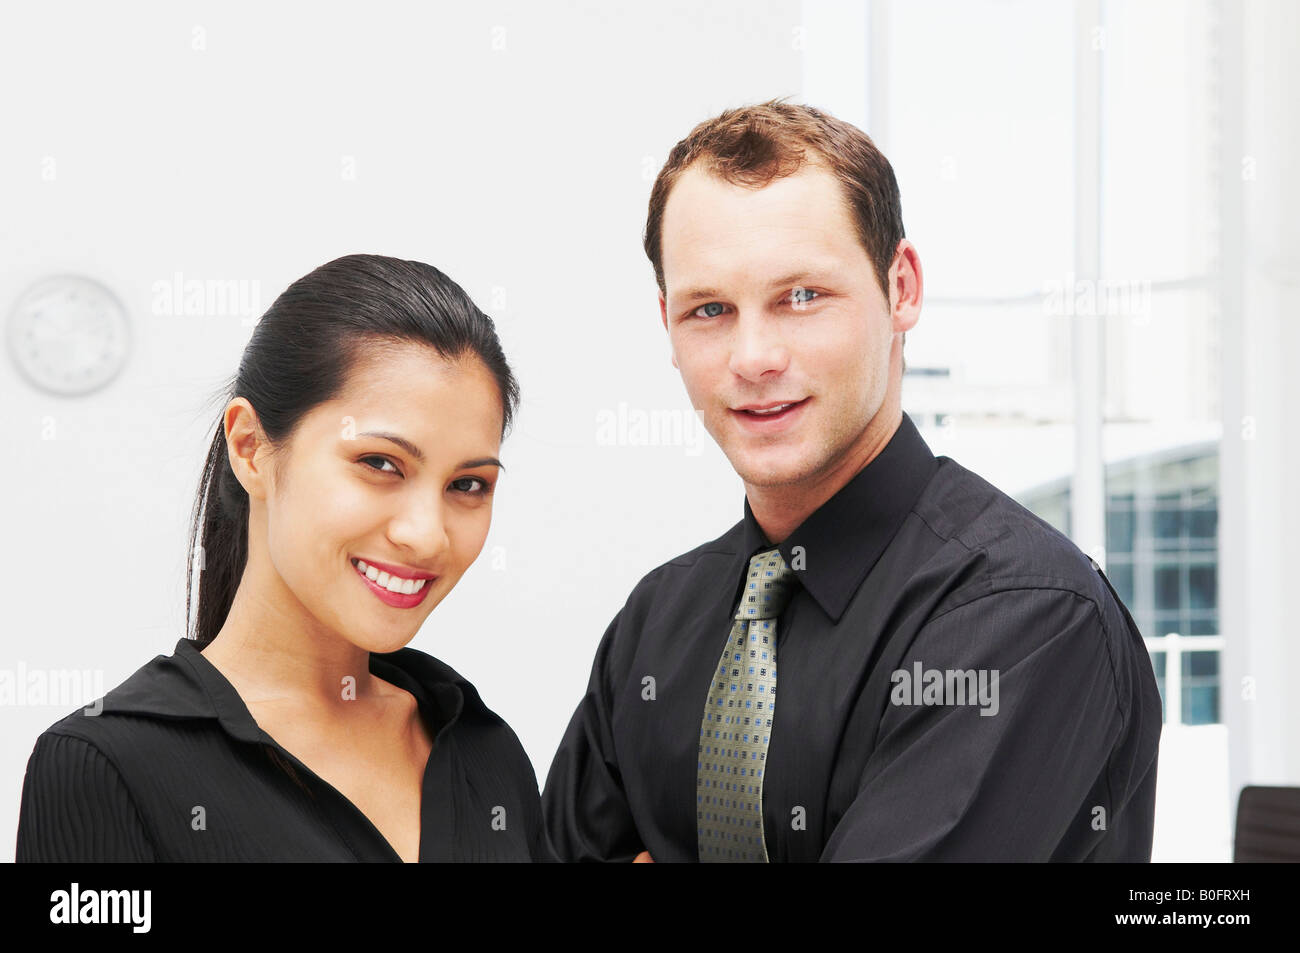 Two confident business people - Stock Image